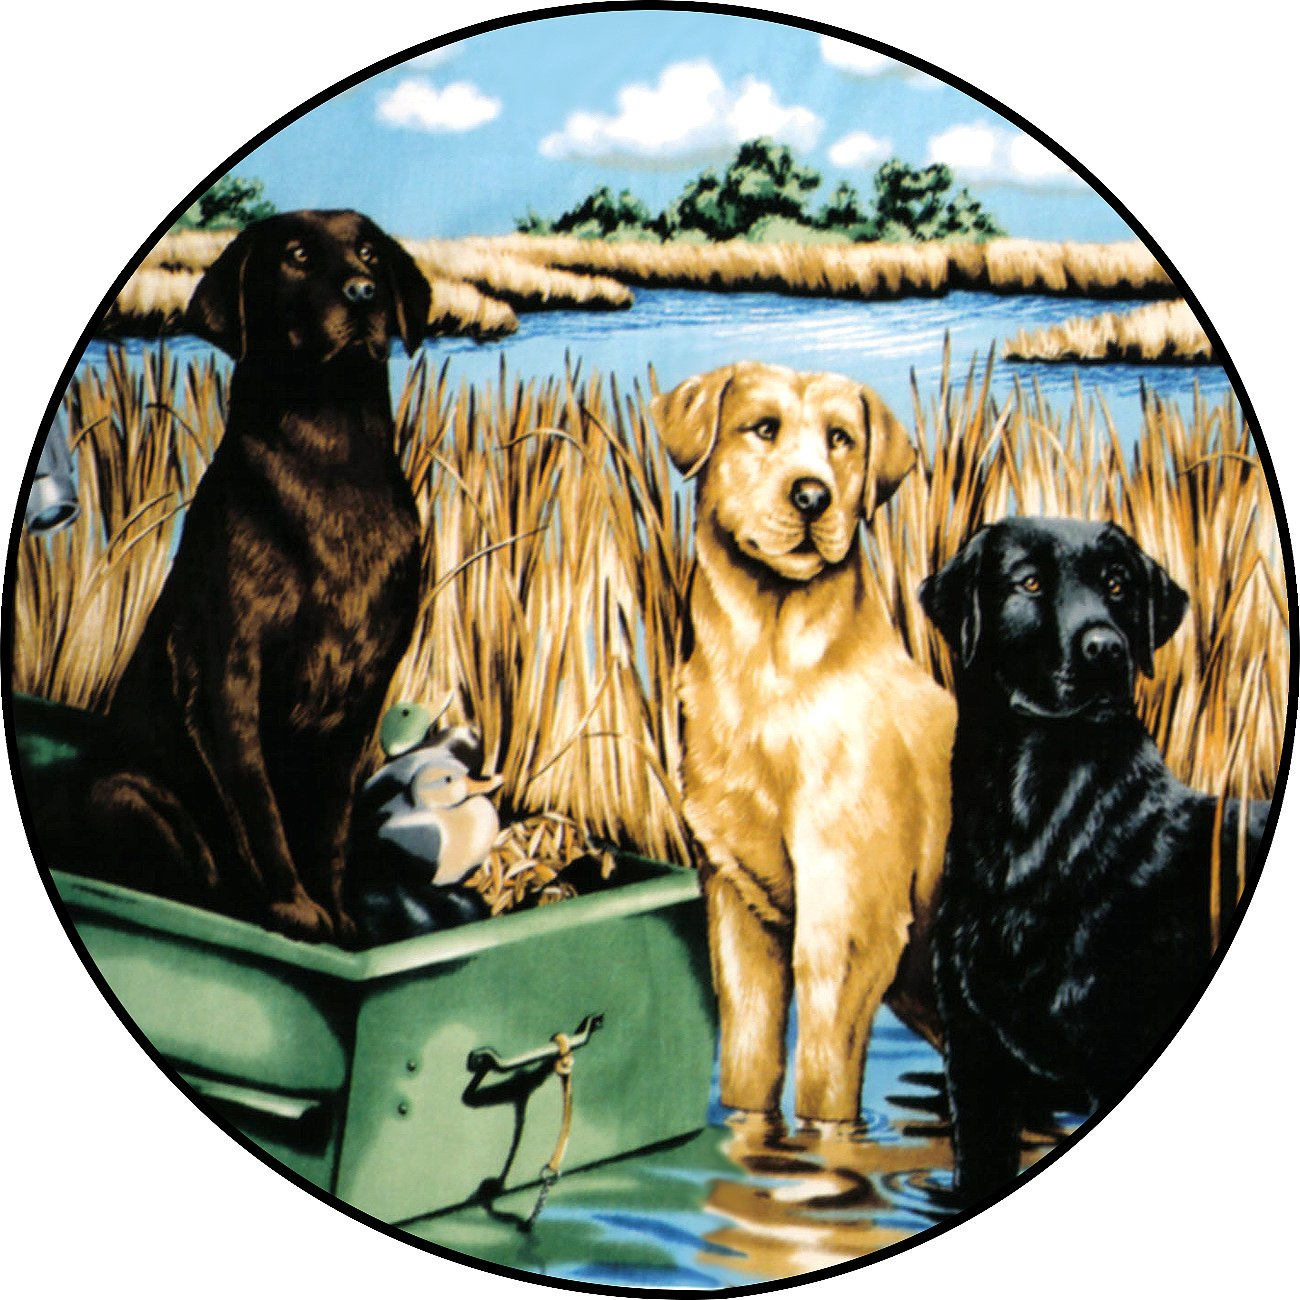 TIRE COVER CENTRAL Labrador Dogs Spare Tire Cover for 30X9.50X15 fits Camper, Jeep, RV, Scamp, Trailer(Drop Down Size menu